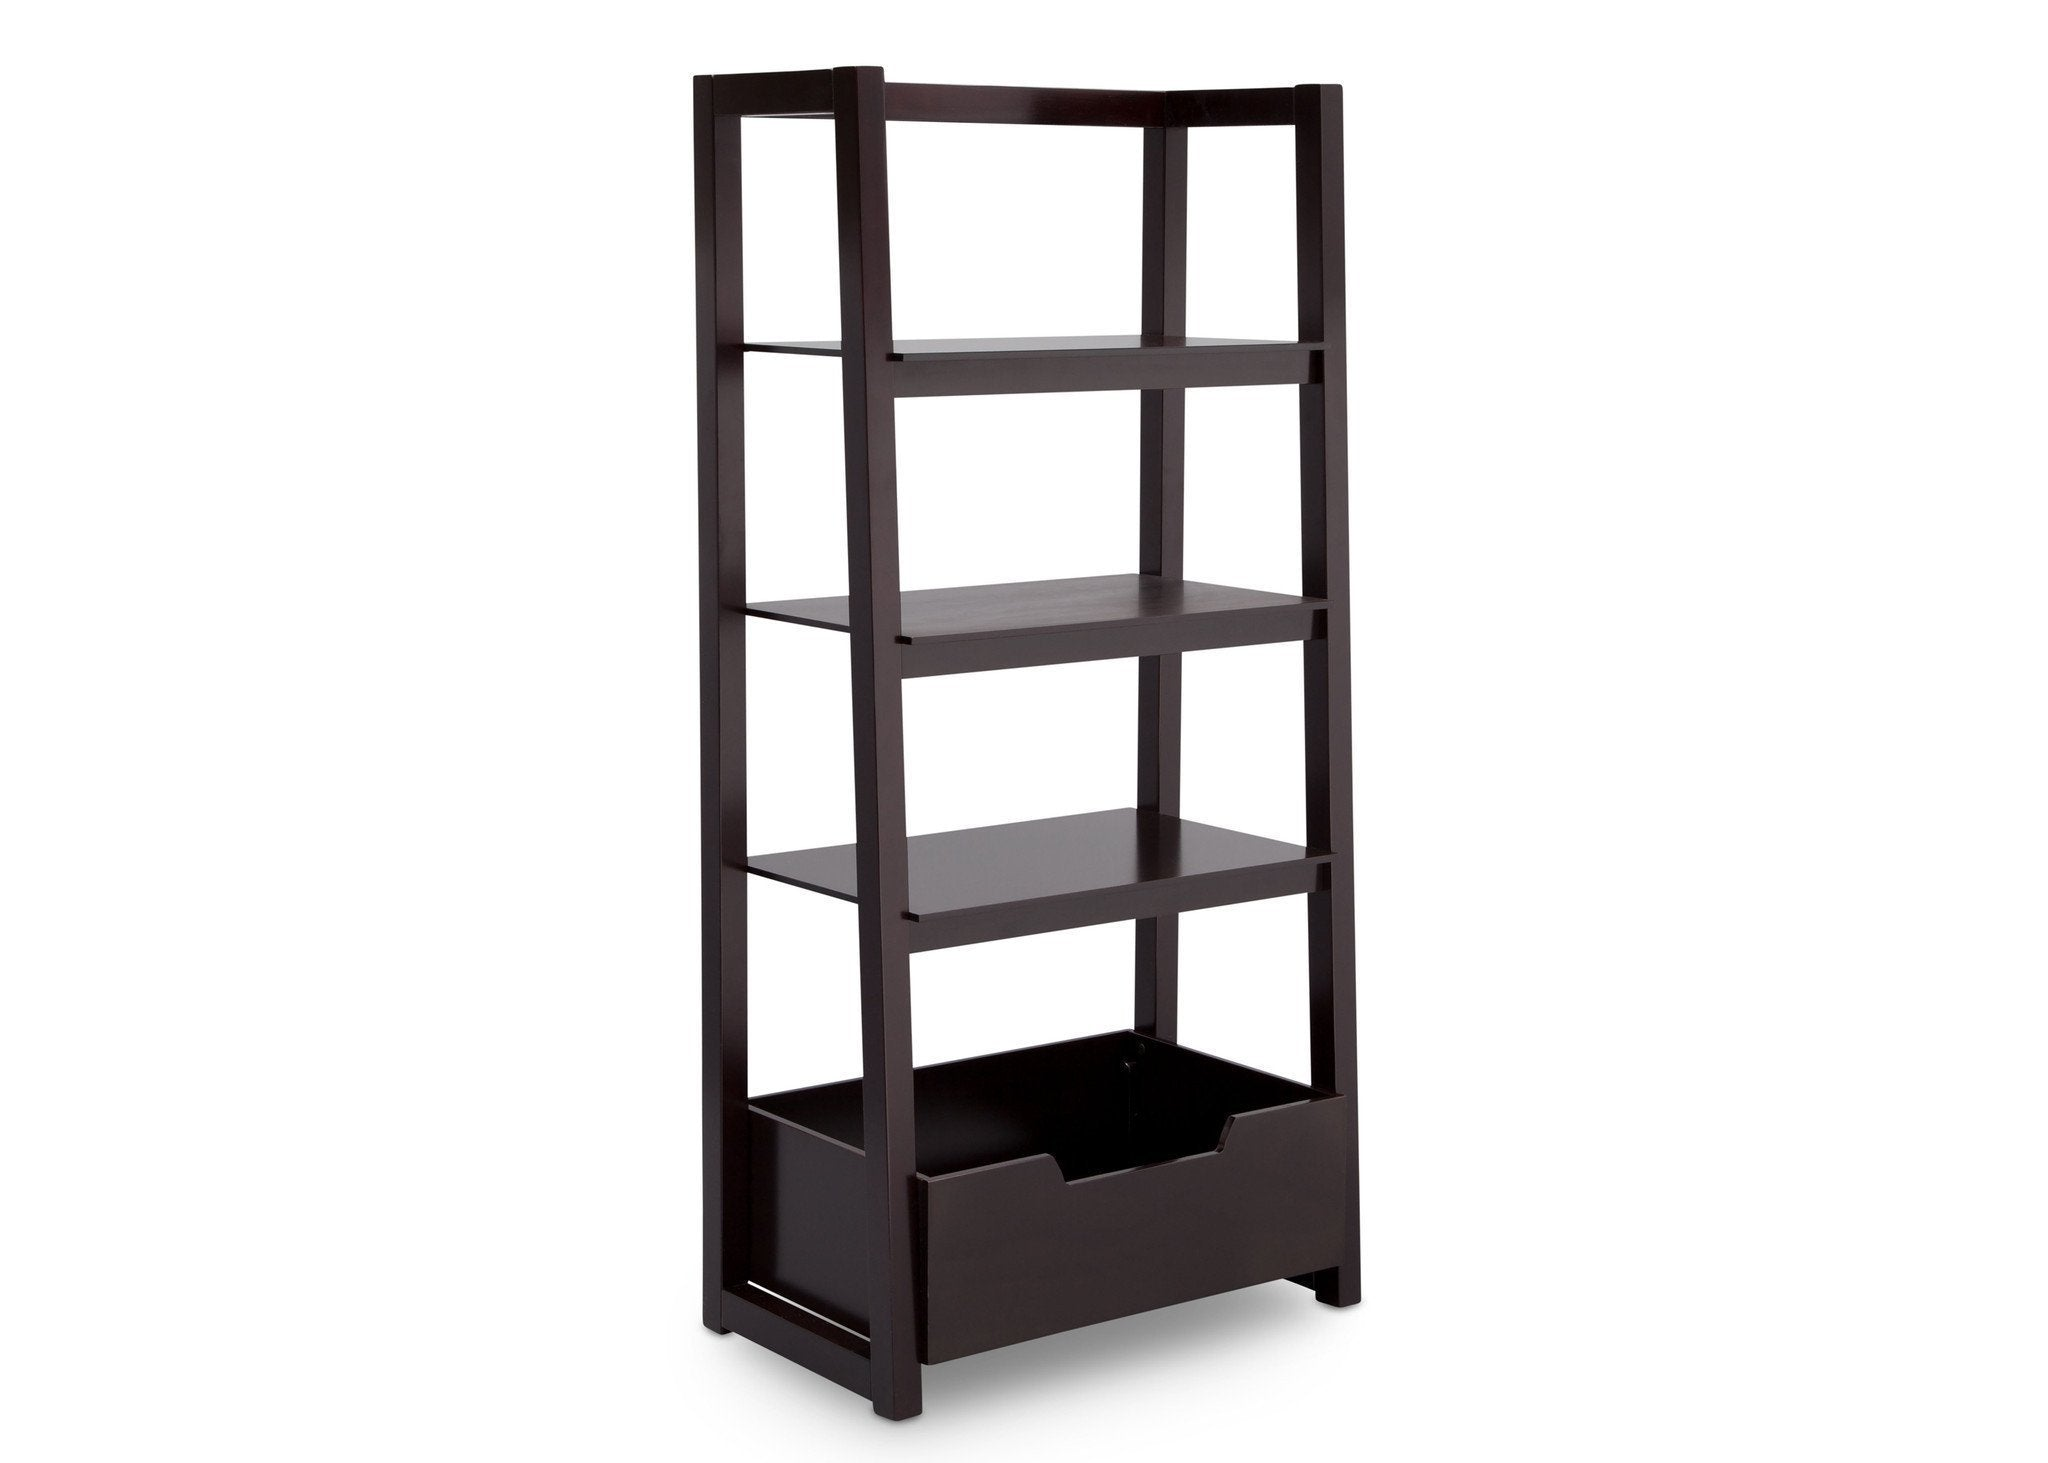 Delta Children Dark Chocolate (207) Gateway Ladder Shelf, Angled View b3b